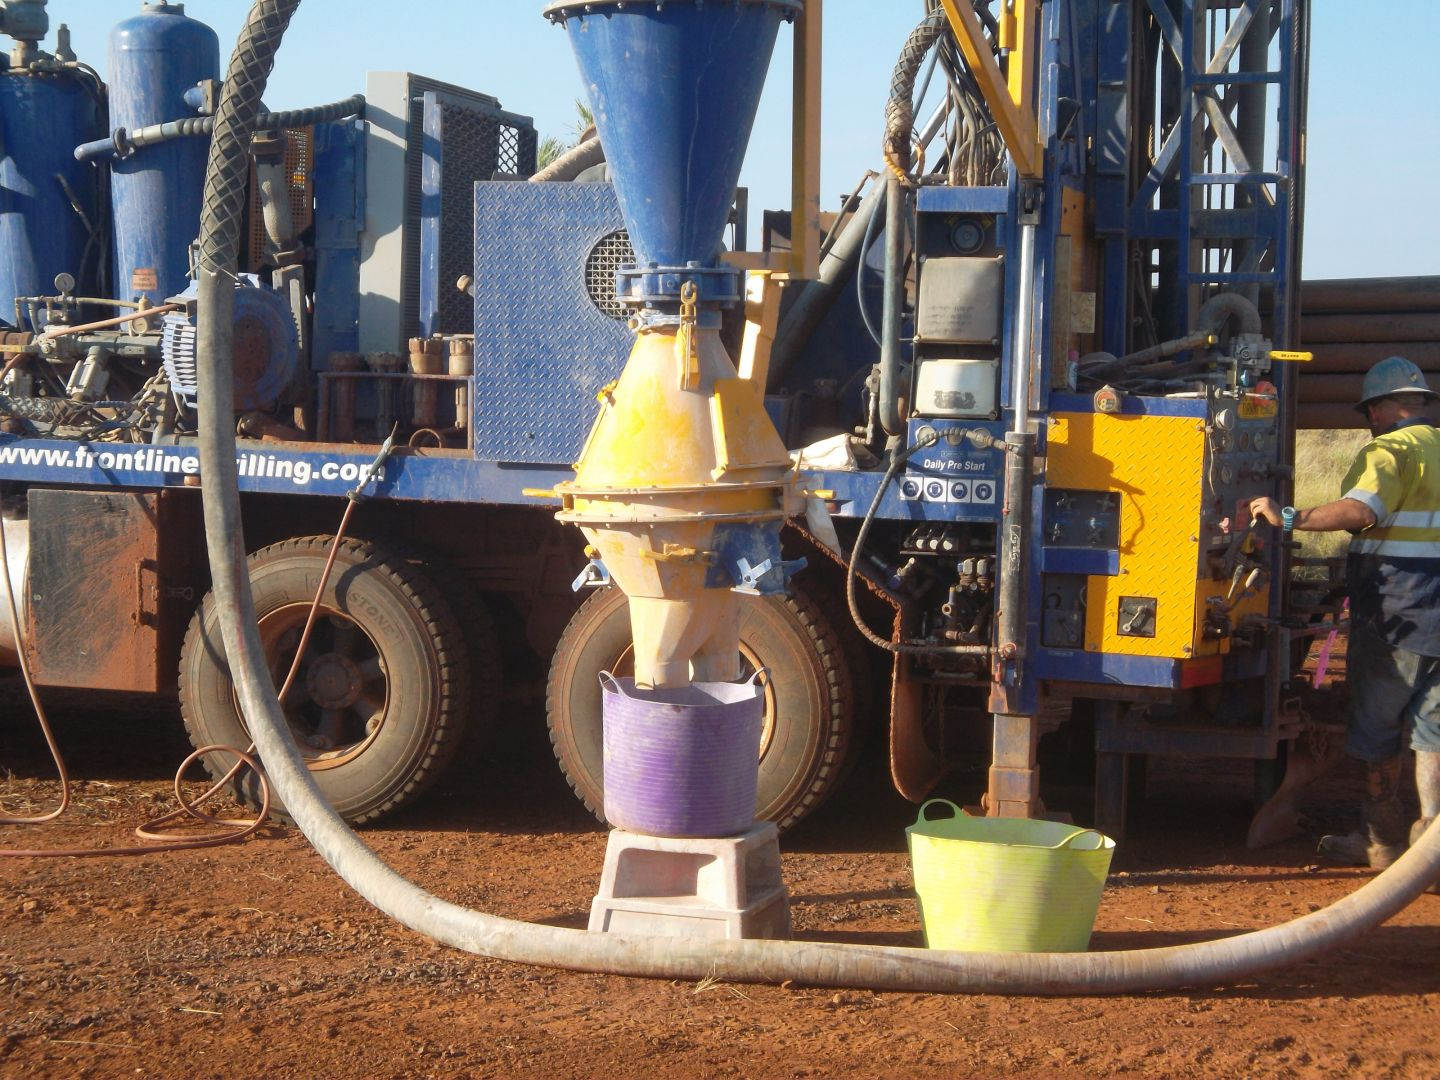 Drilling at Cue